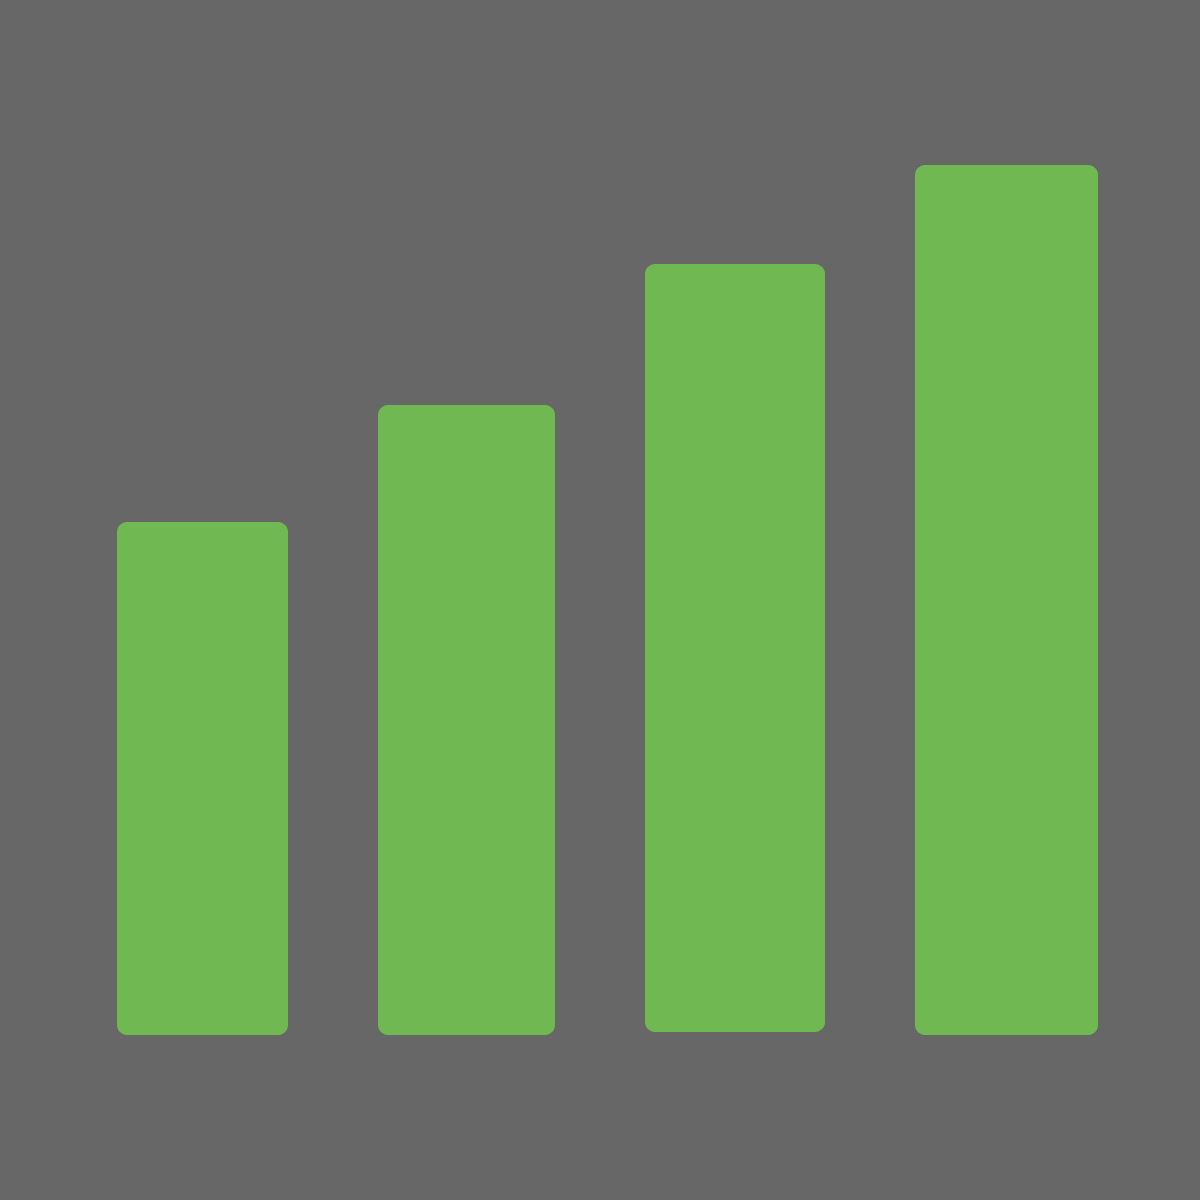 Shopify Build Leads Apps by Neowauk